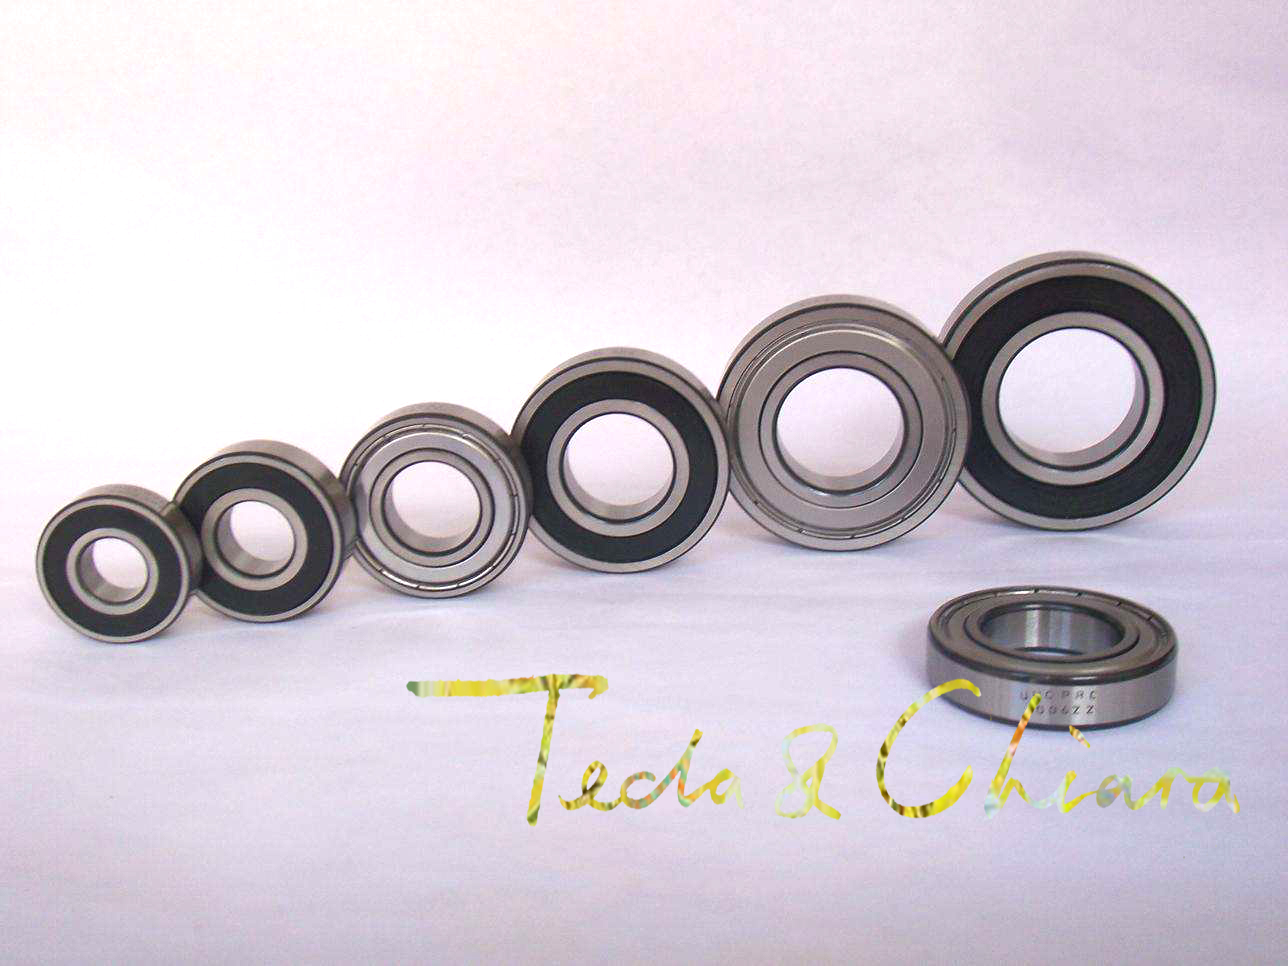 6001 6001ZZ 6001RS 6001-2Z 6001Z 6001-2RS ZZ RS RZ 2RZ Deep Groove Ball Bearings 12 x 28 x 8mm High Quality 1pcs 6001 2rs 6001rs 6001 rs 12 28 8mm hybrid ceramic ball deep groove ball bearing 12x28x8mm for bicycle part